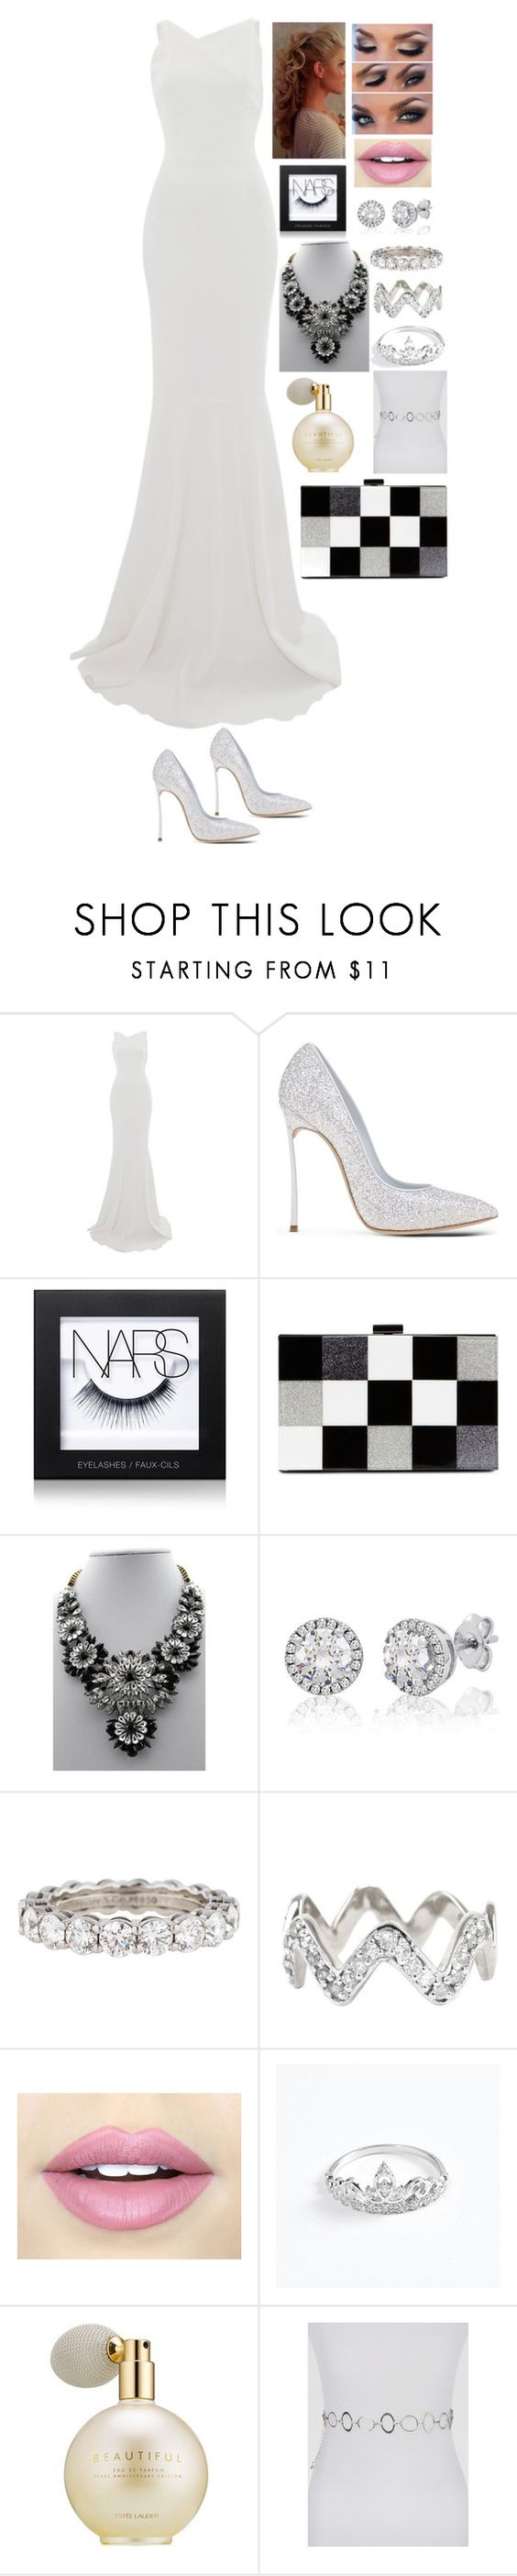 """""""White gown outfit"""" by ynessica ❤ liked on Polyvore featuring Roland Mouret, Casadei, NARS Cosmetics, ALDO, Tiffany & Co., ADORNIA, Fiebiger, Estée Lauder and Ashley Stewart"""